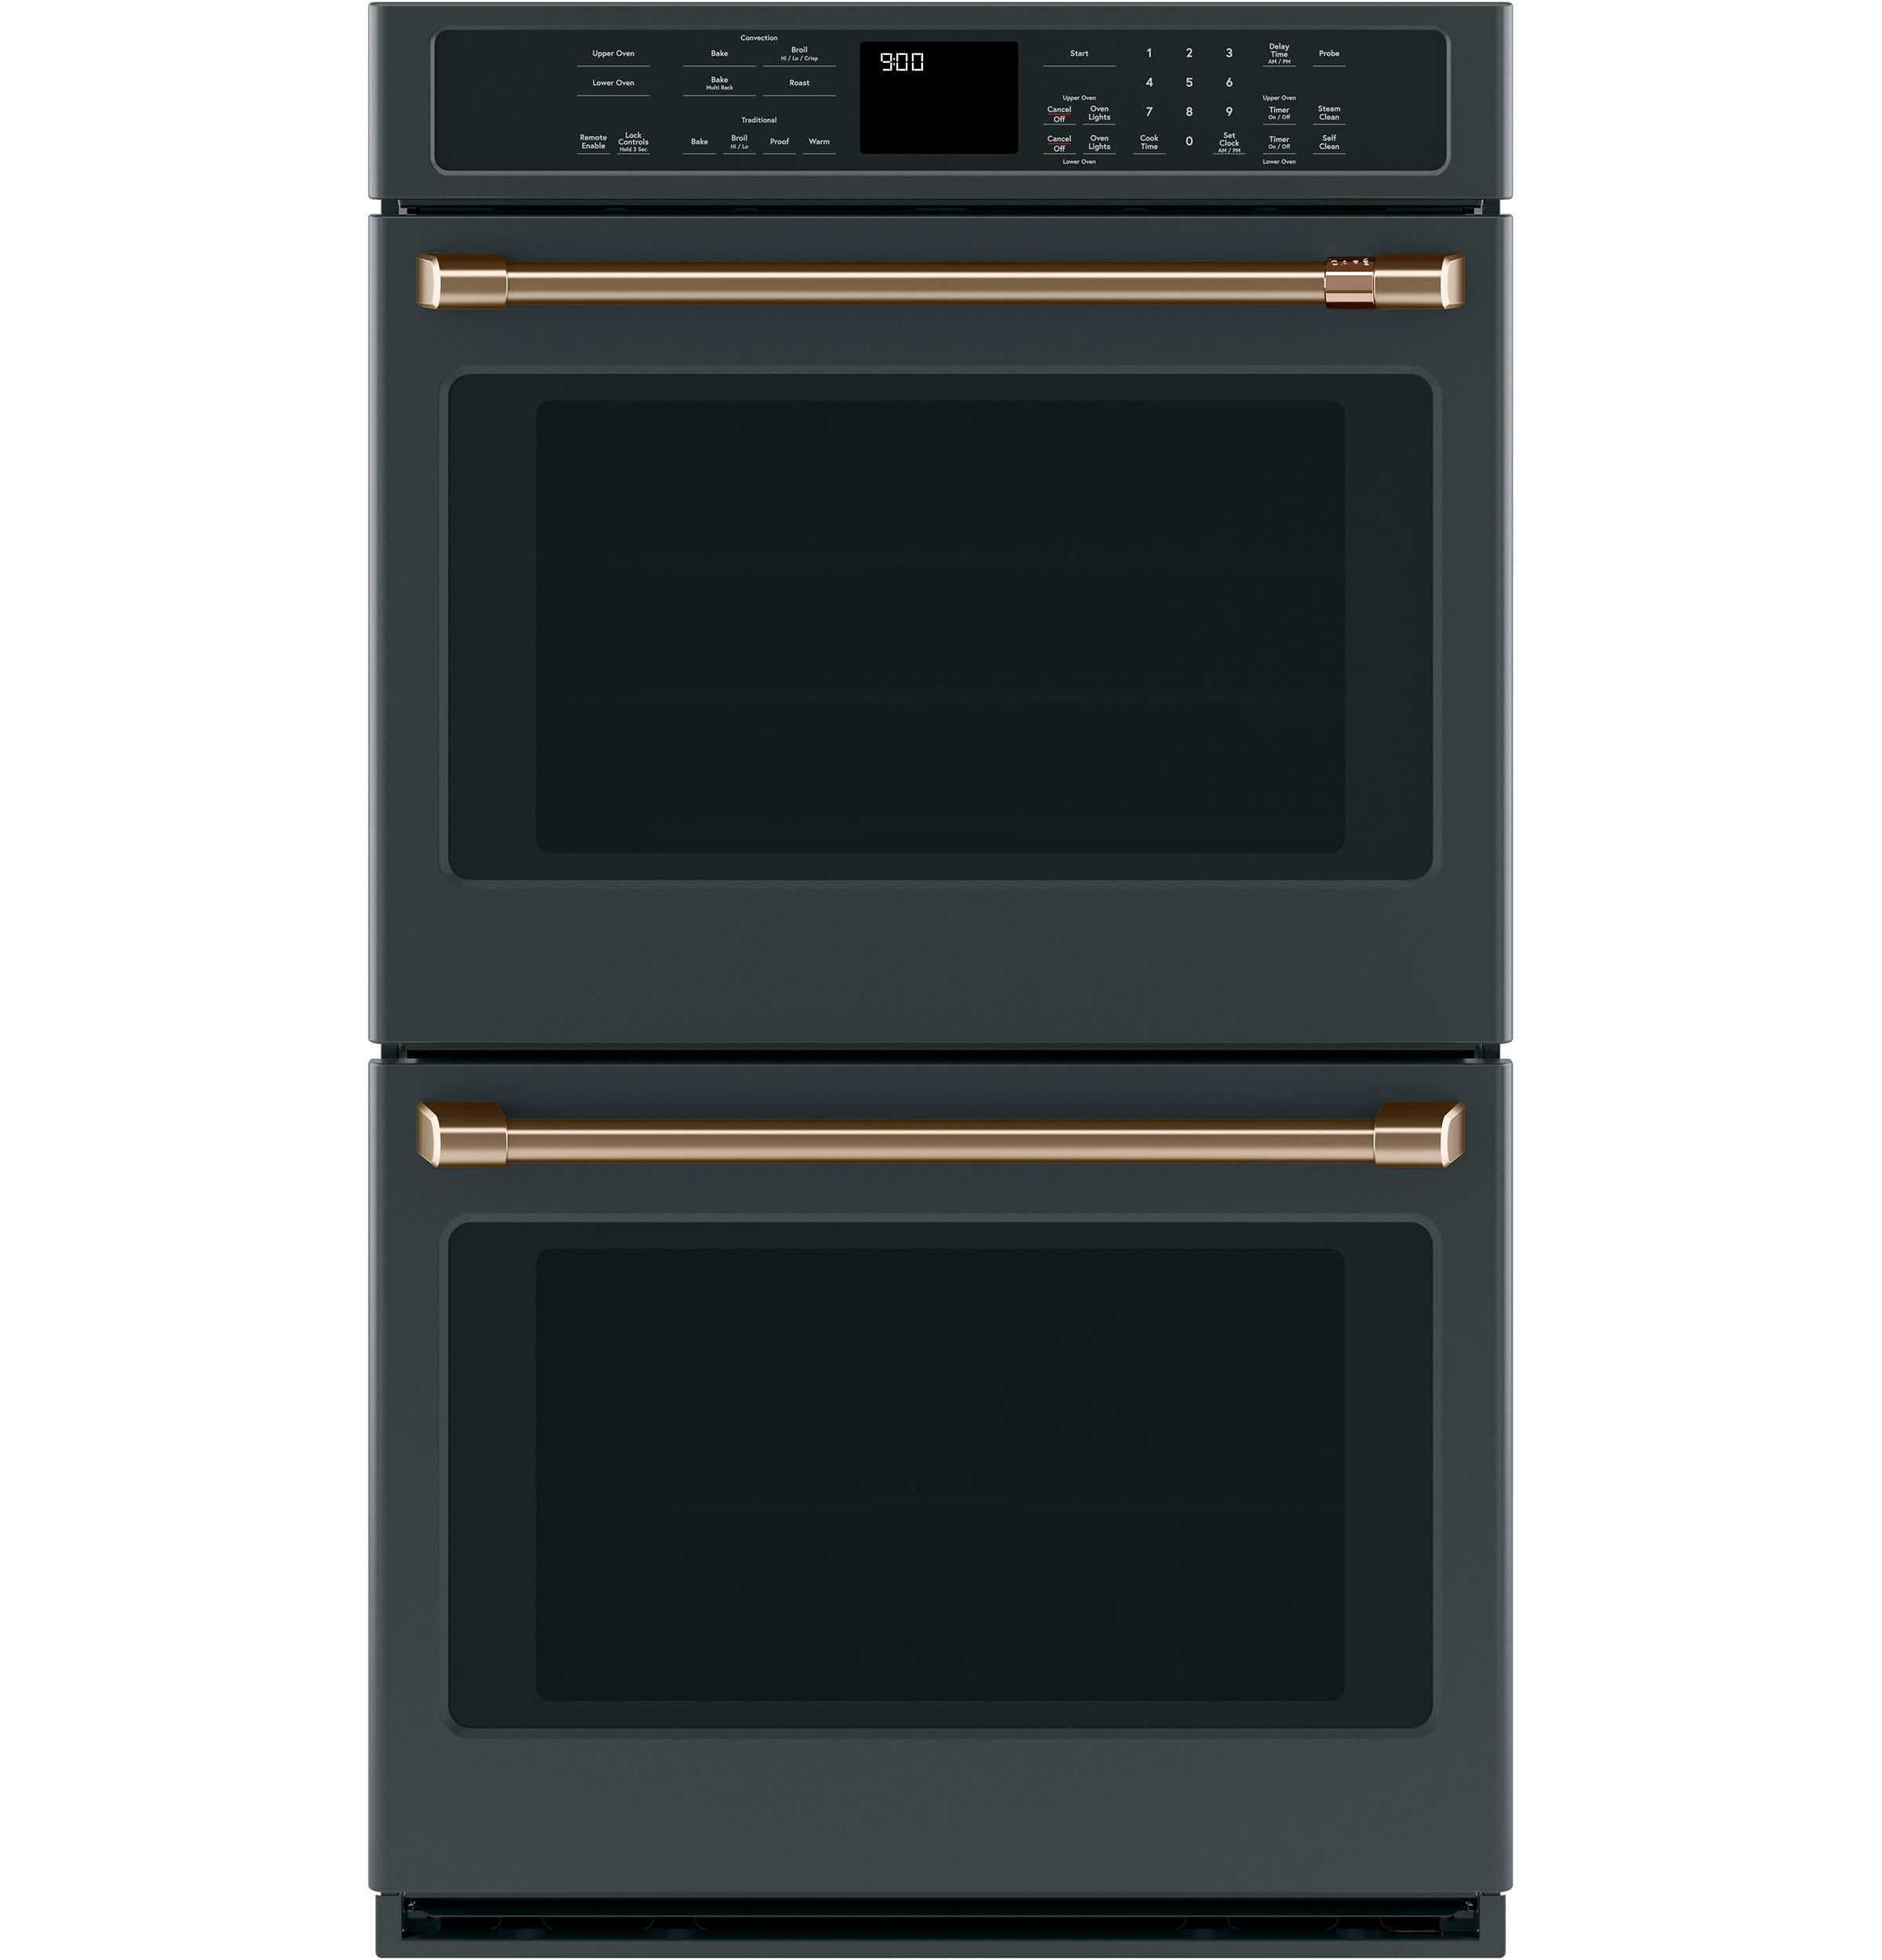 "Model: CTD90DP3MD1 | Cafe Café™ 30"" Smart Double Wall Oven with Convection"